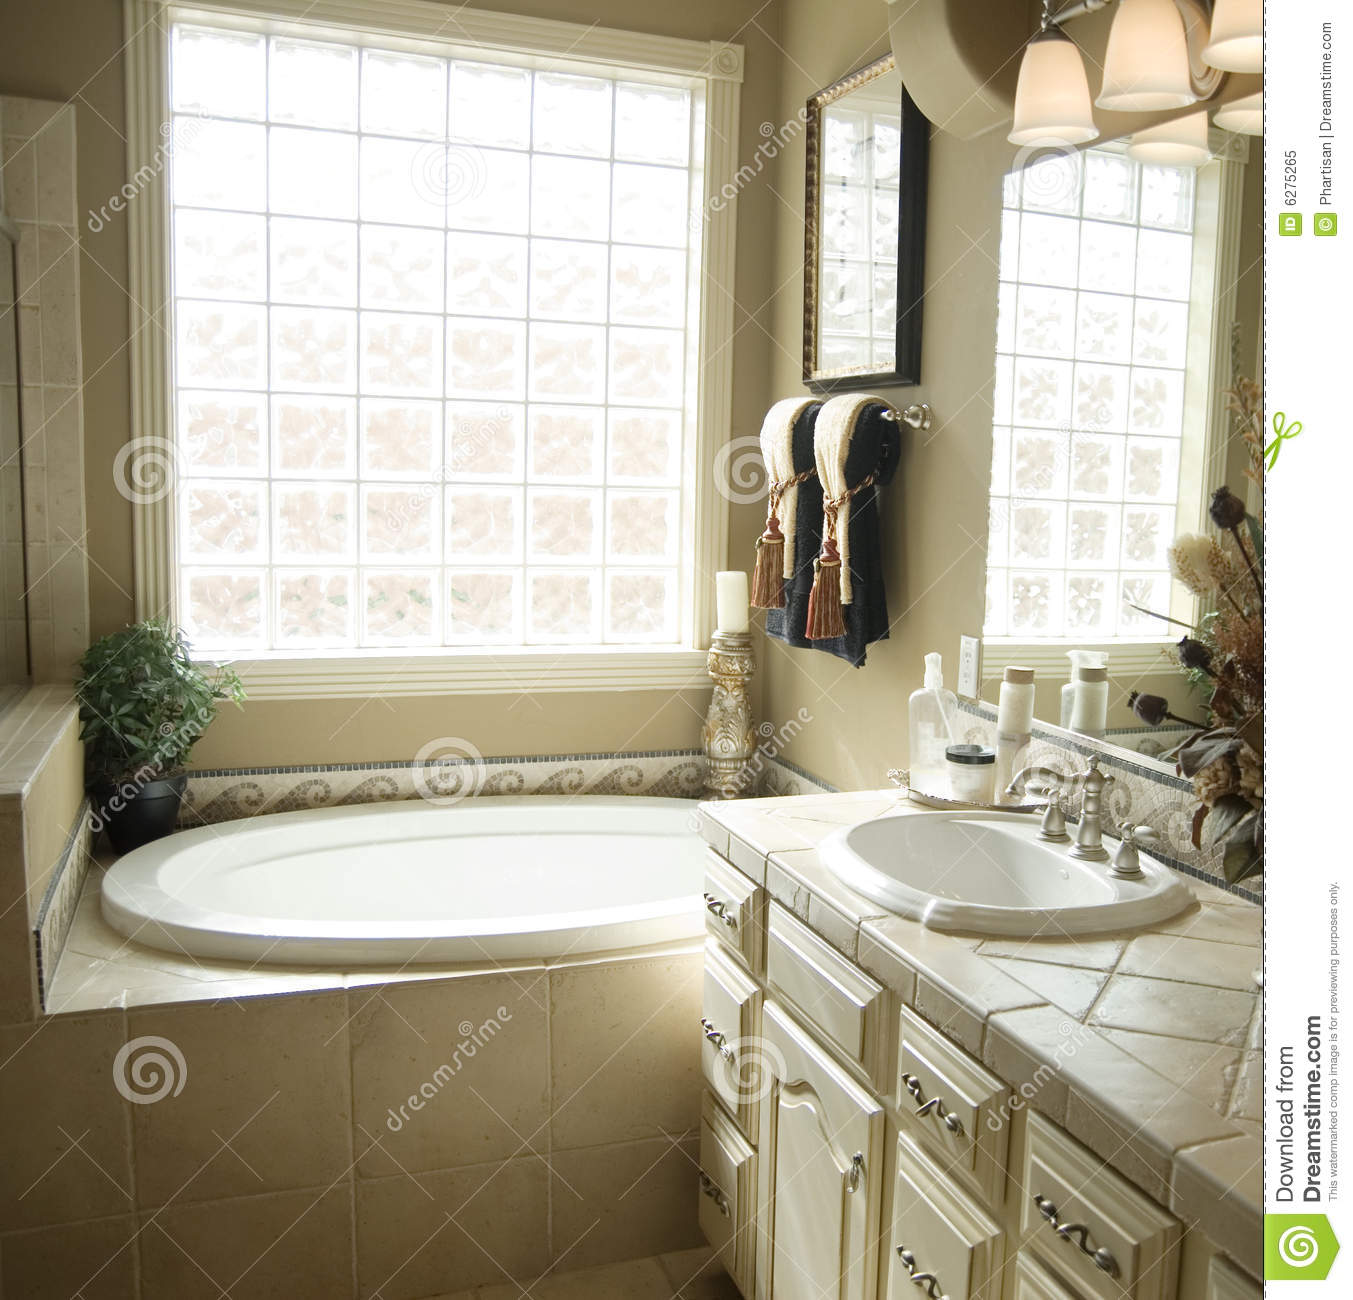 Beautiful bathroom interior design royalty free stock for Bathroom interior design